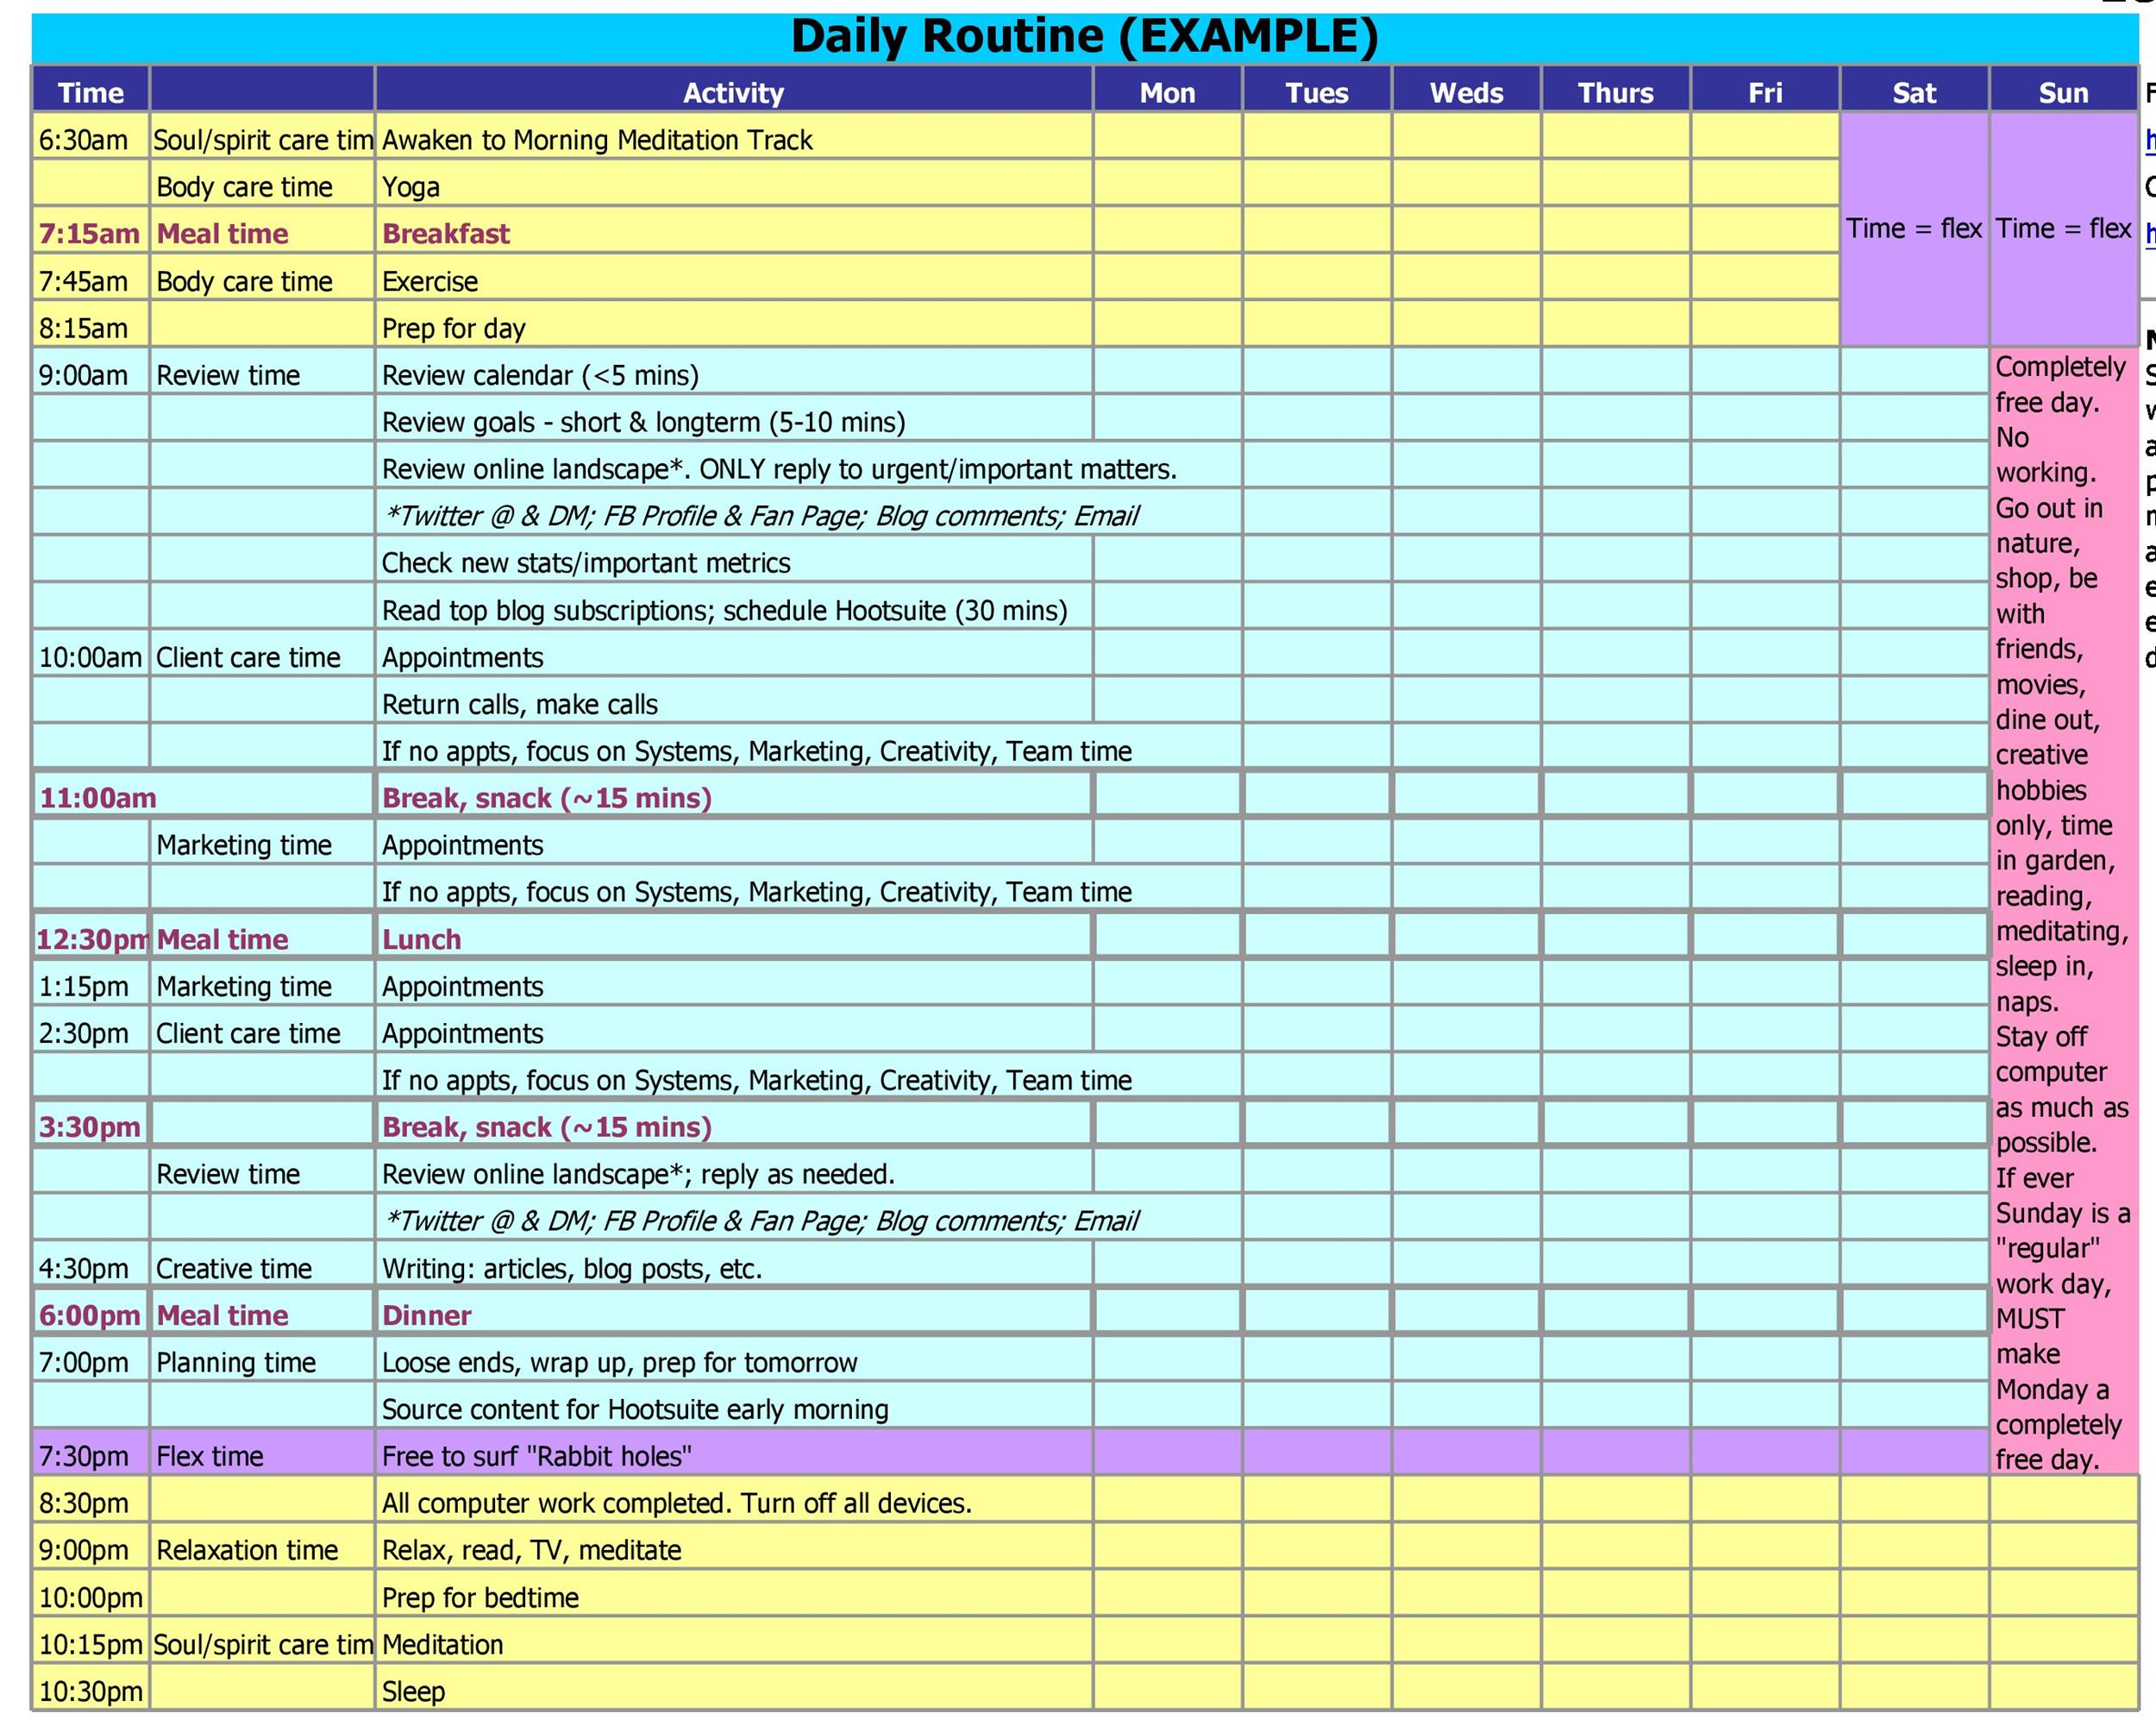 17 Perfect Daily Work Schedule Templates - Template Lab - unit organizer routine template